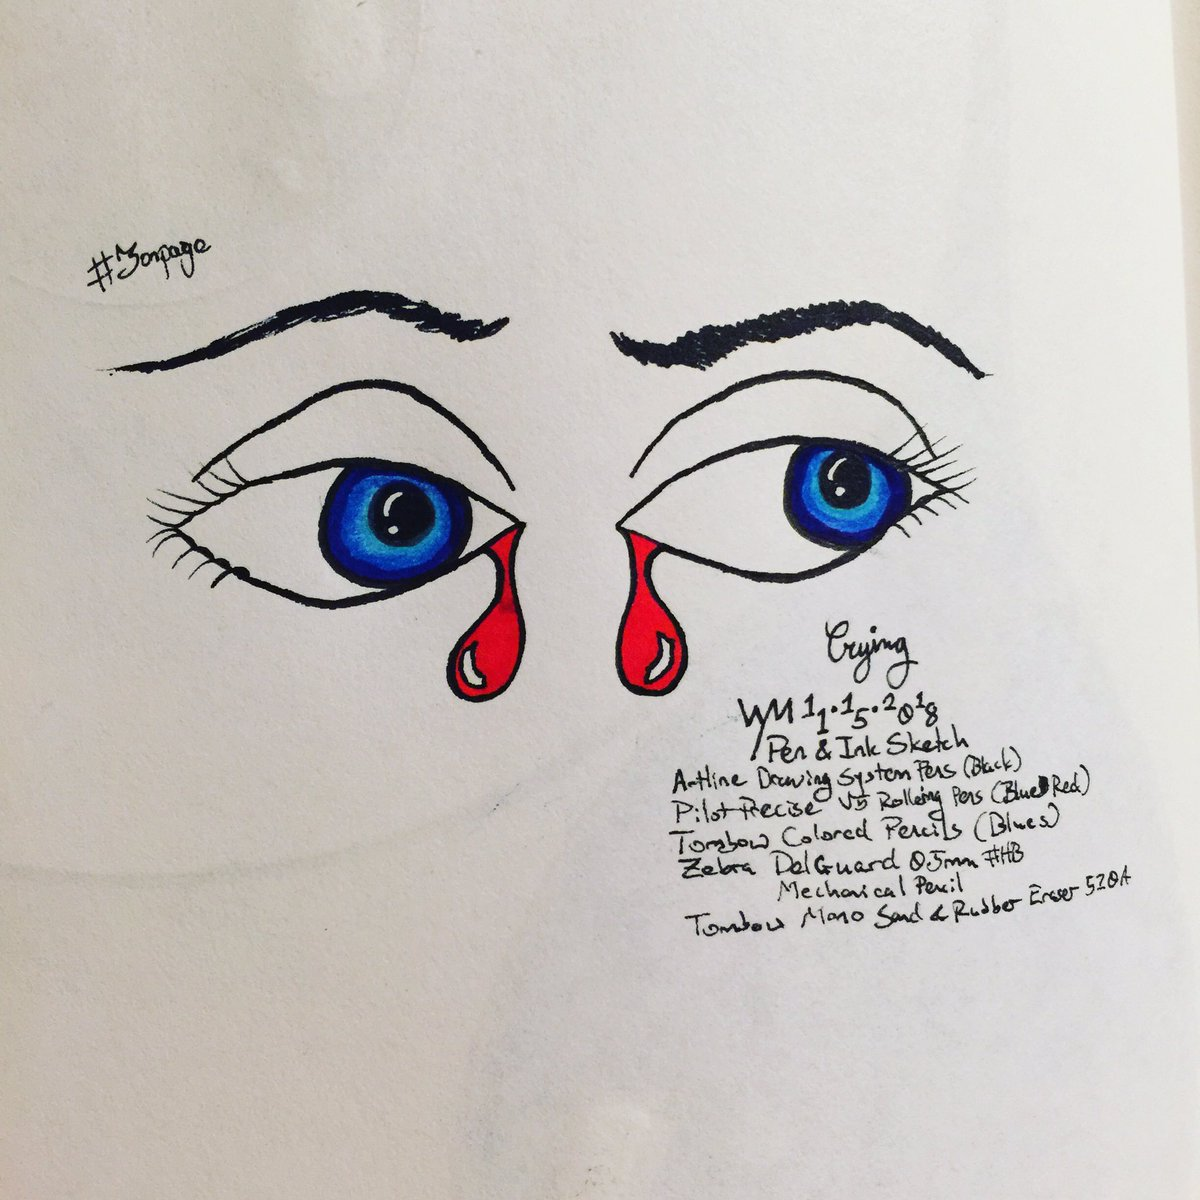 #wynart #Crying #eyes #art #traditionalart #traditionalsketching #sketch #sketching #penandink #coloredpencilspic.twitter.com/FathiRzW7O